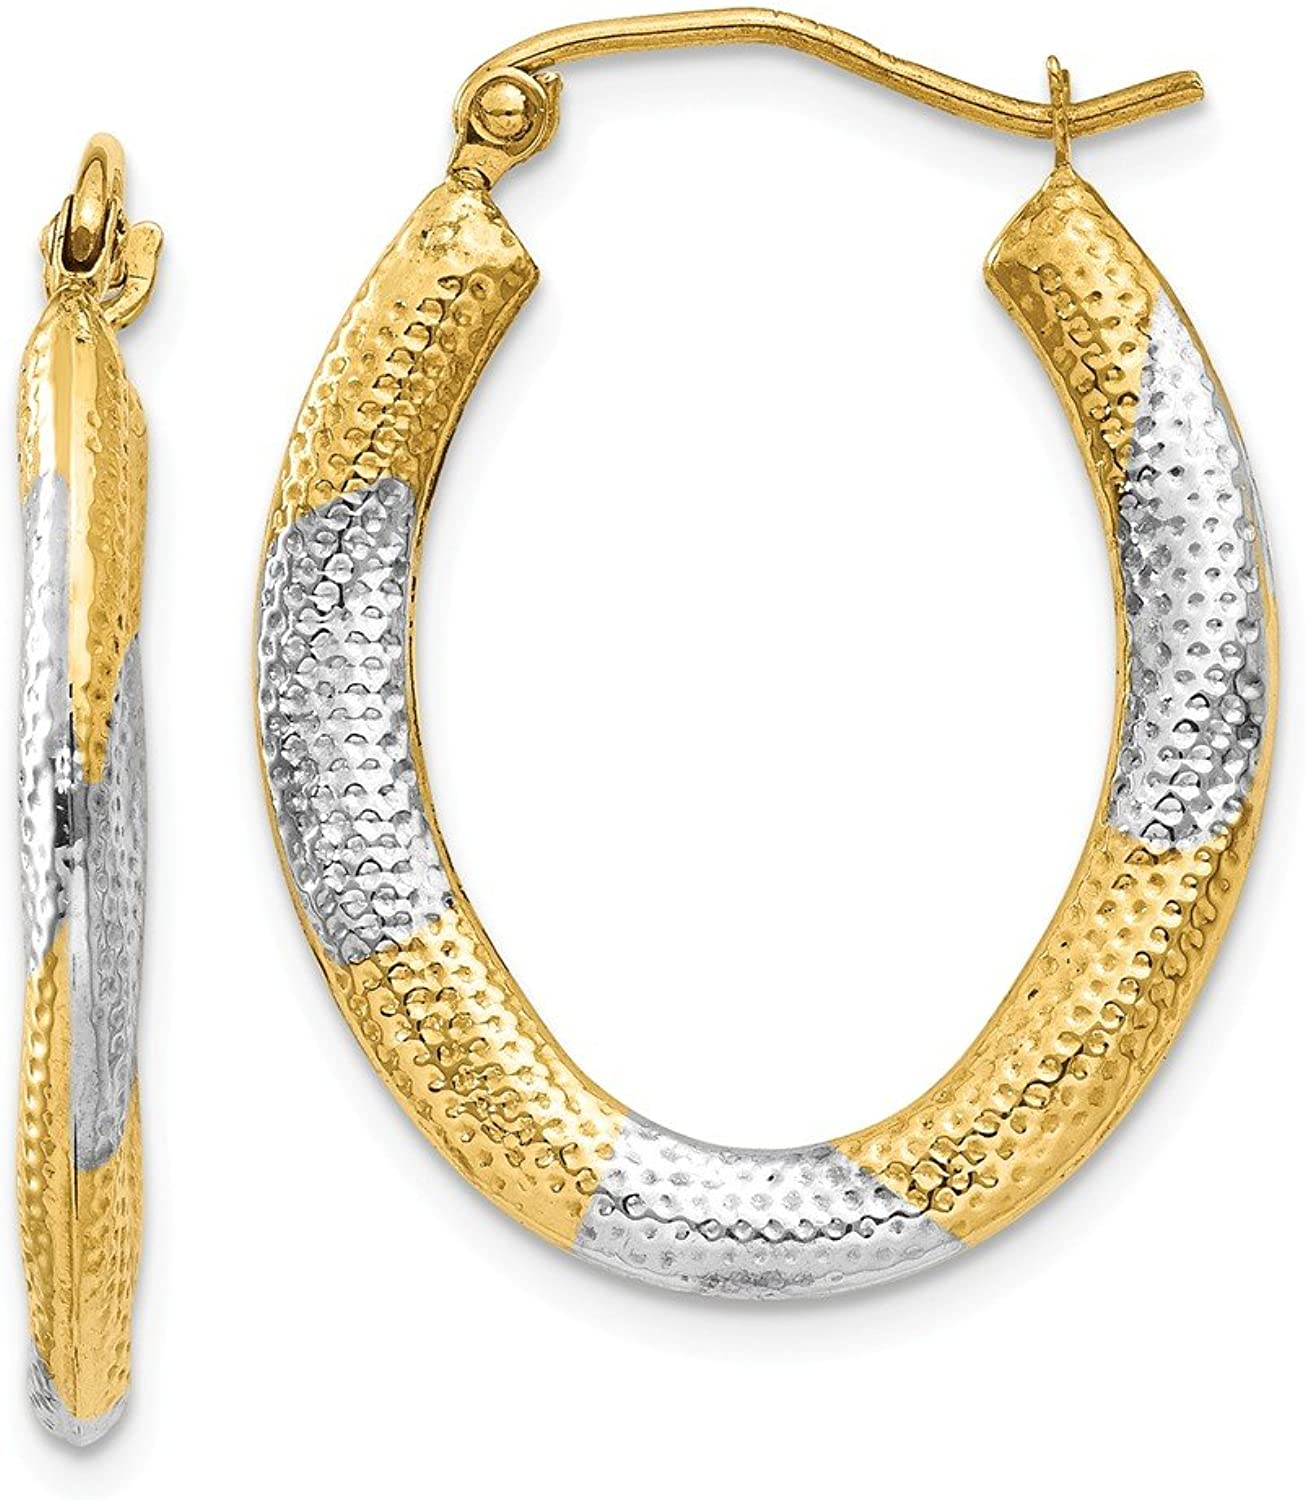 Beautiful rhodium plated gold and silver 14K 14K & Rhodium Textured Hollow Oval Hoop Earrings